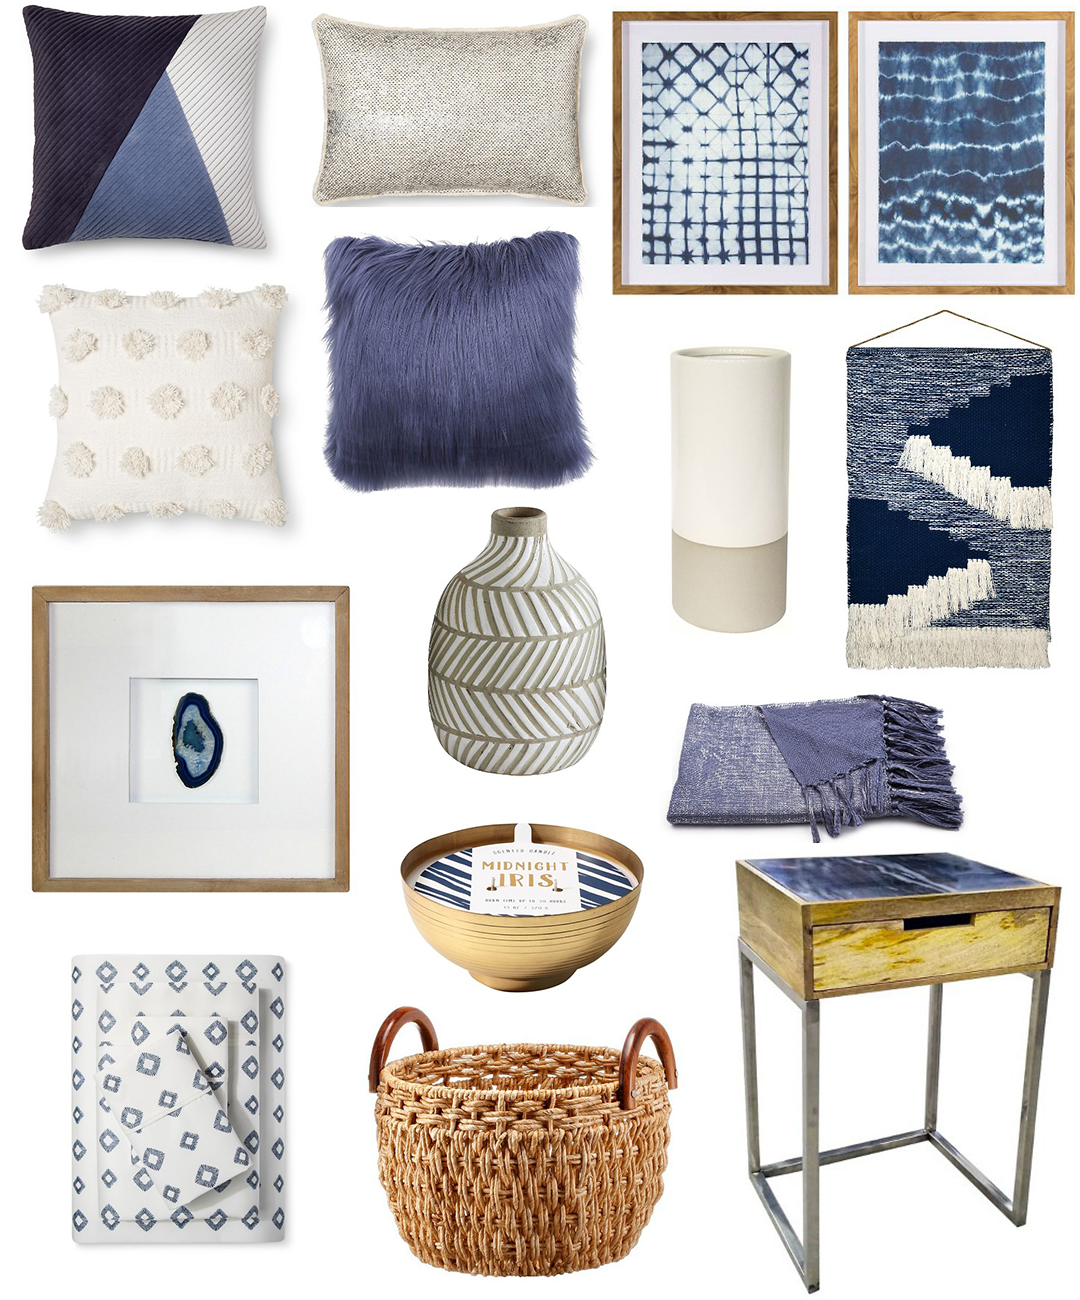 14 (More) Target Home Products to Pick Up Now | Kayla Lynn